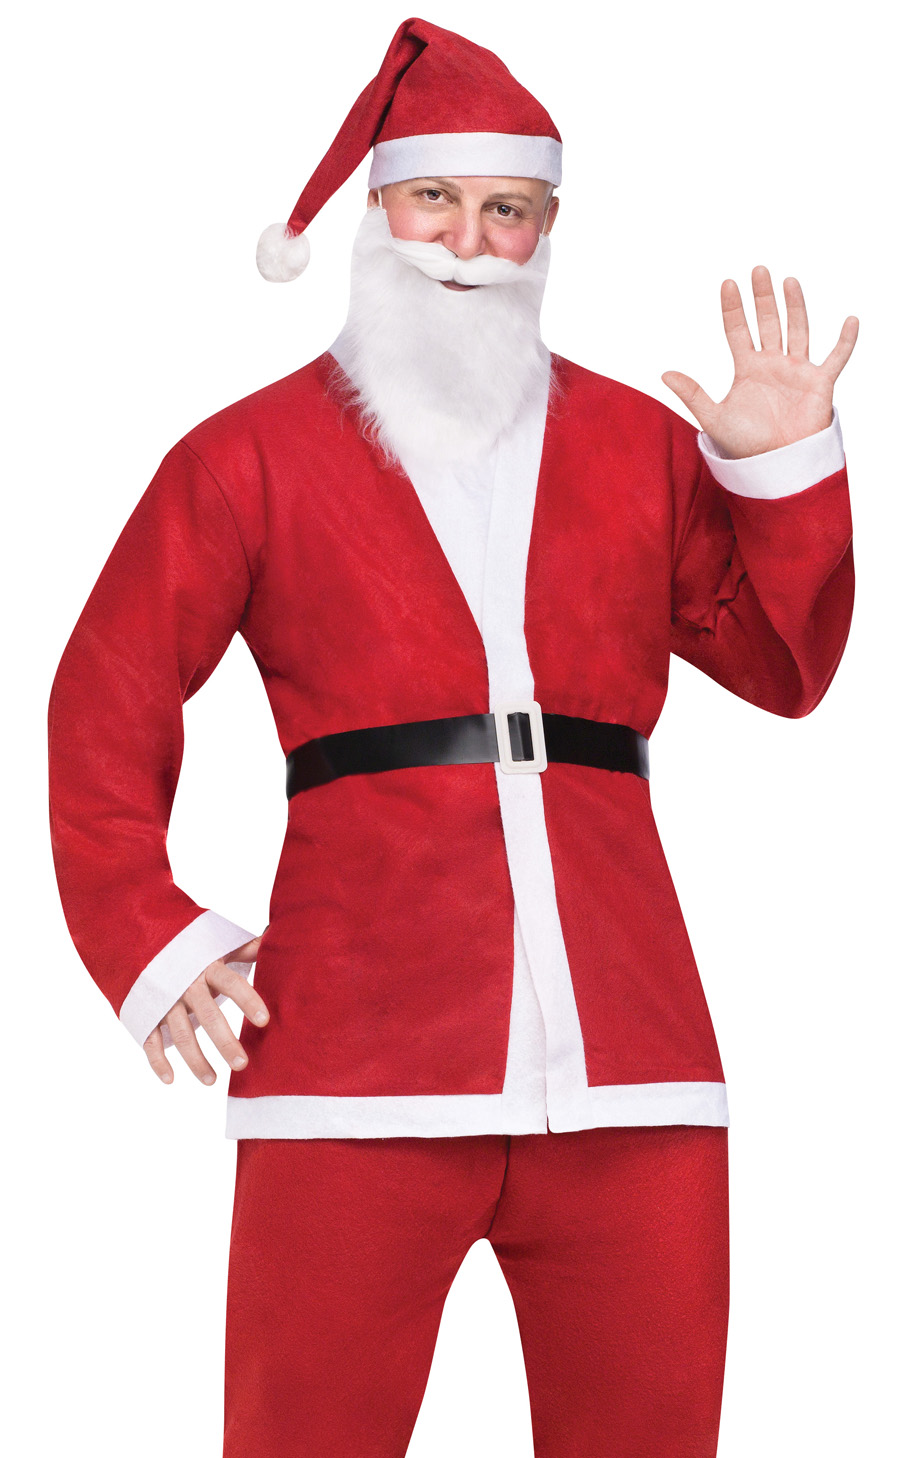 Fun World Costumes Adult Mens Funny Pub Crawl Santa Claus Christmas Costume at Sears.com